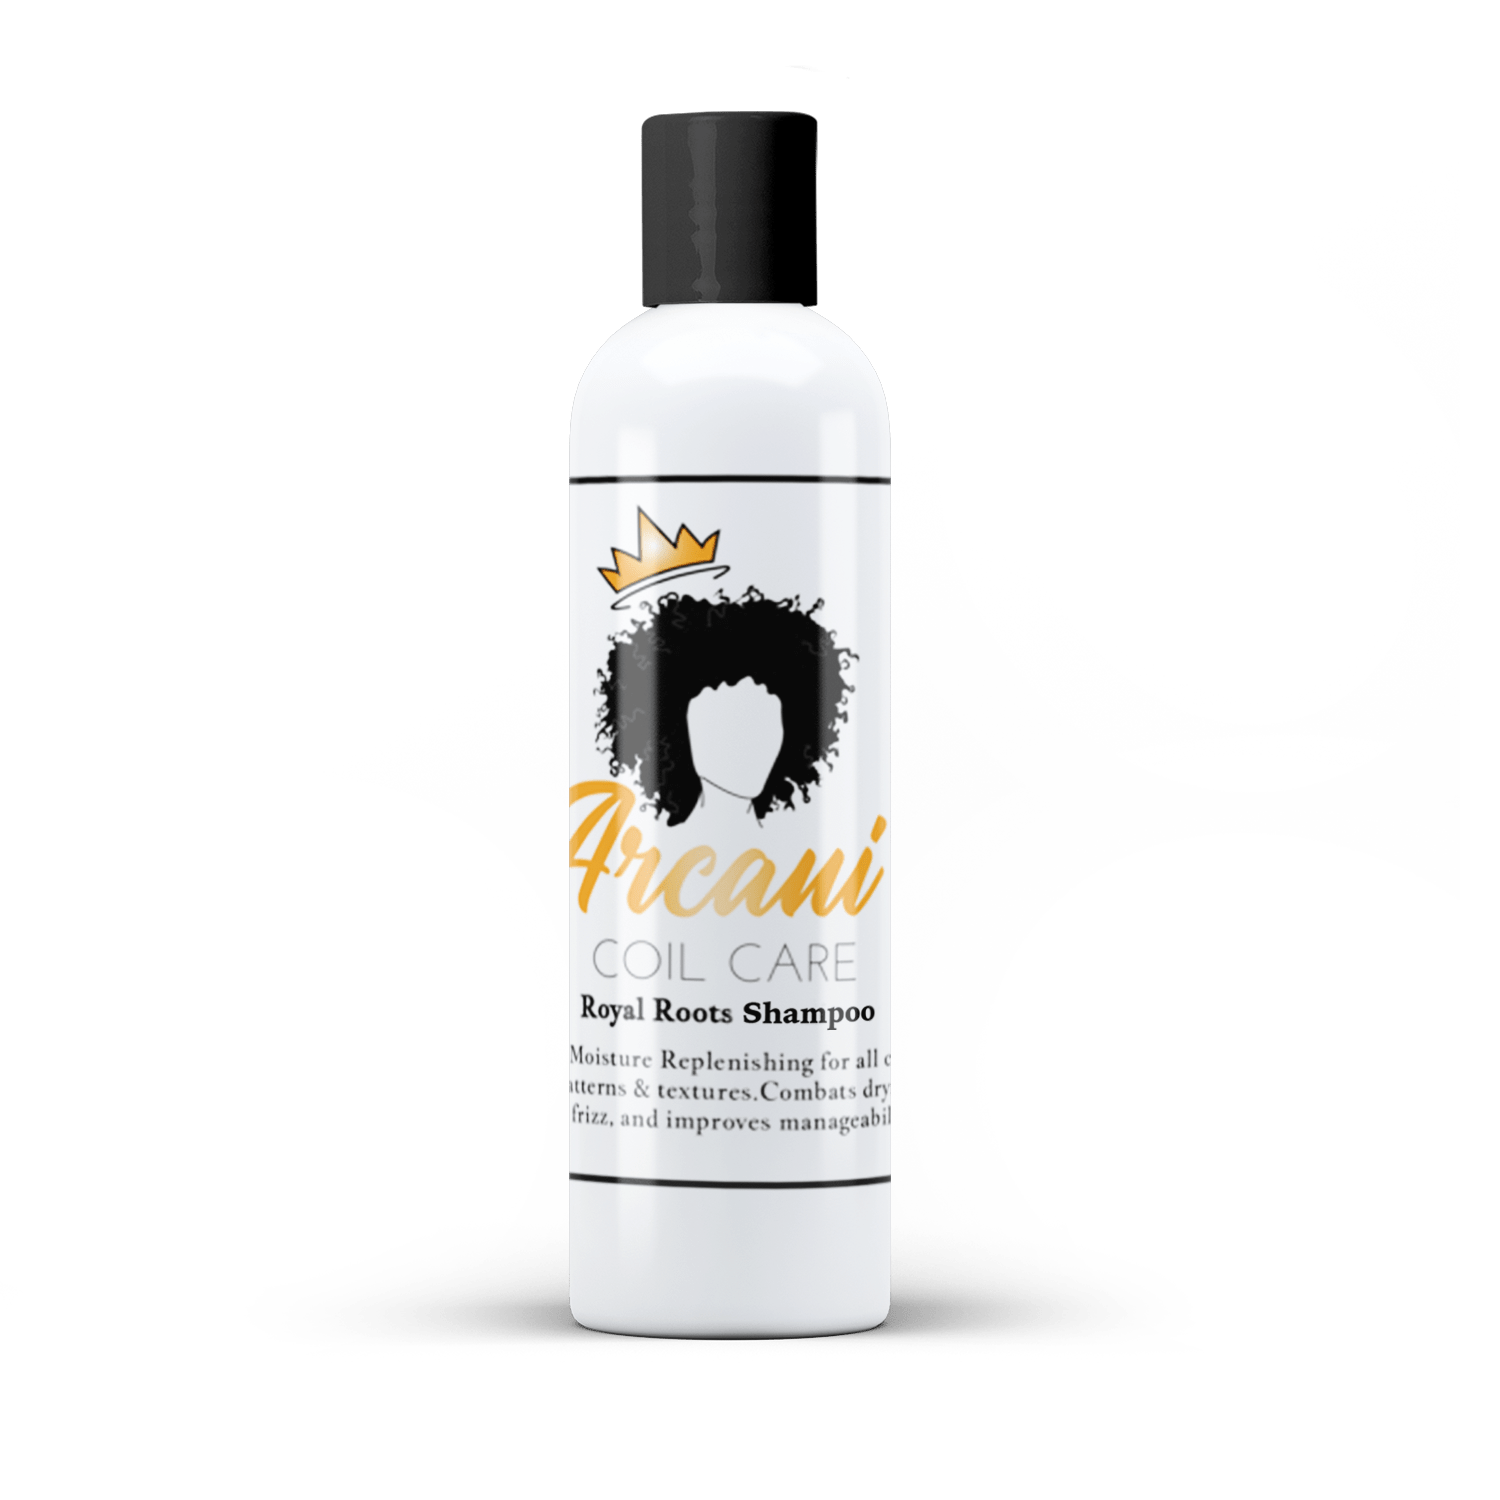 Royal Roots Shampoo - Arcani Coil Care